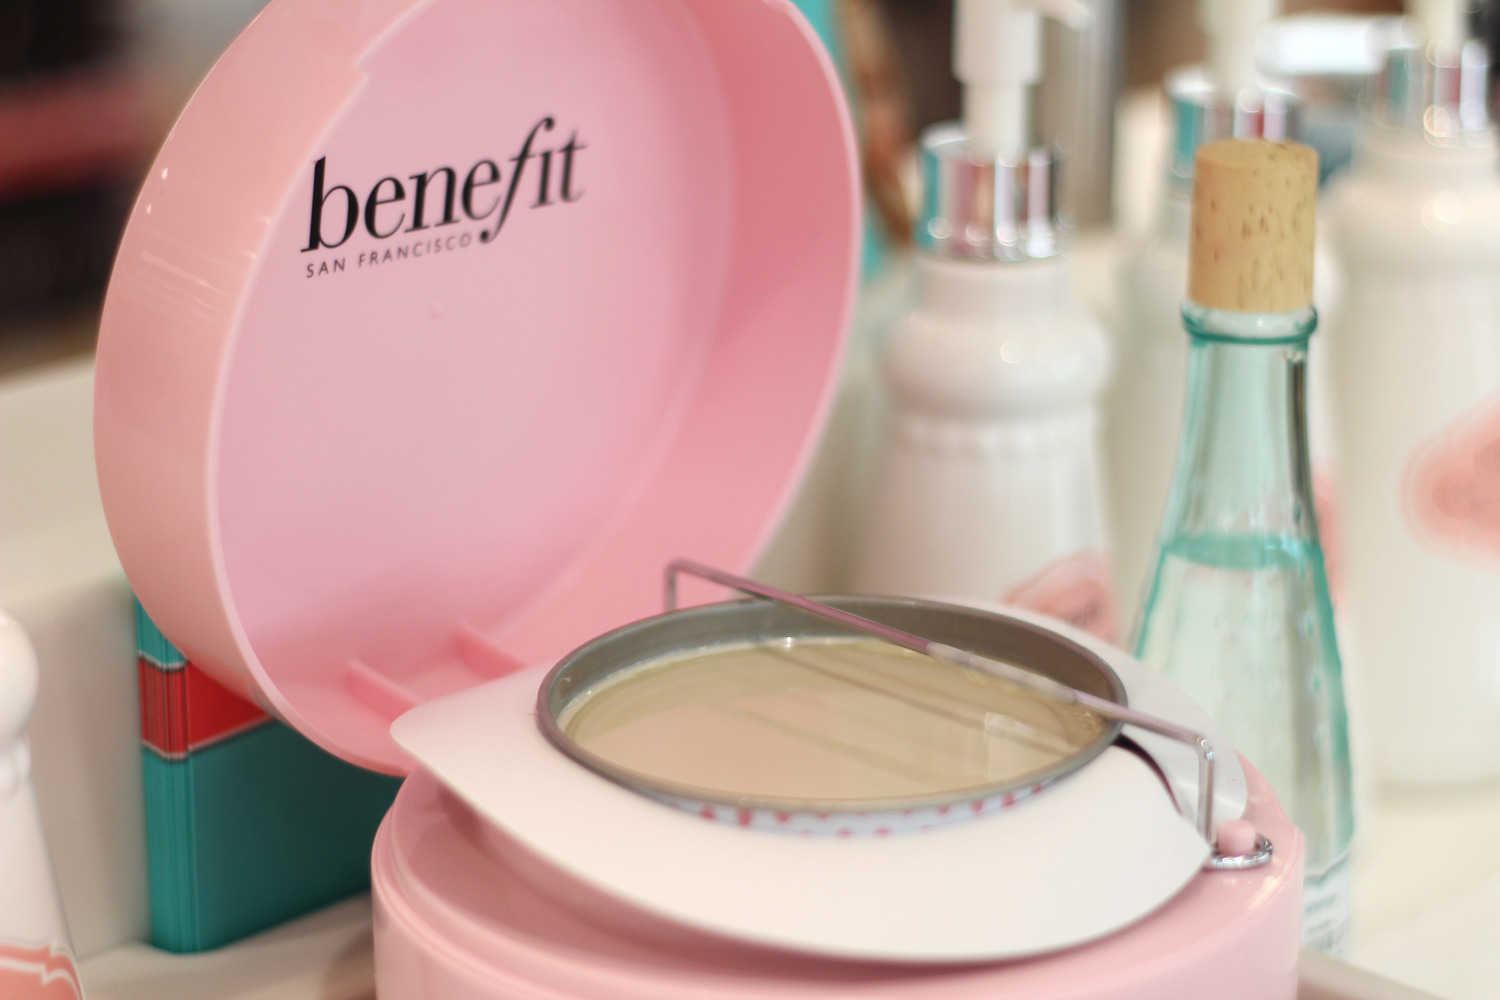 Benefit Brow Wax Experience Ulta Beauty In Frisco Jaleesa Charisse